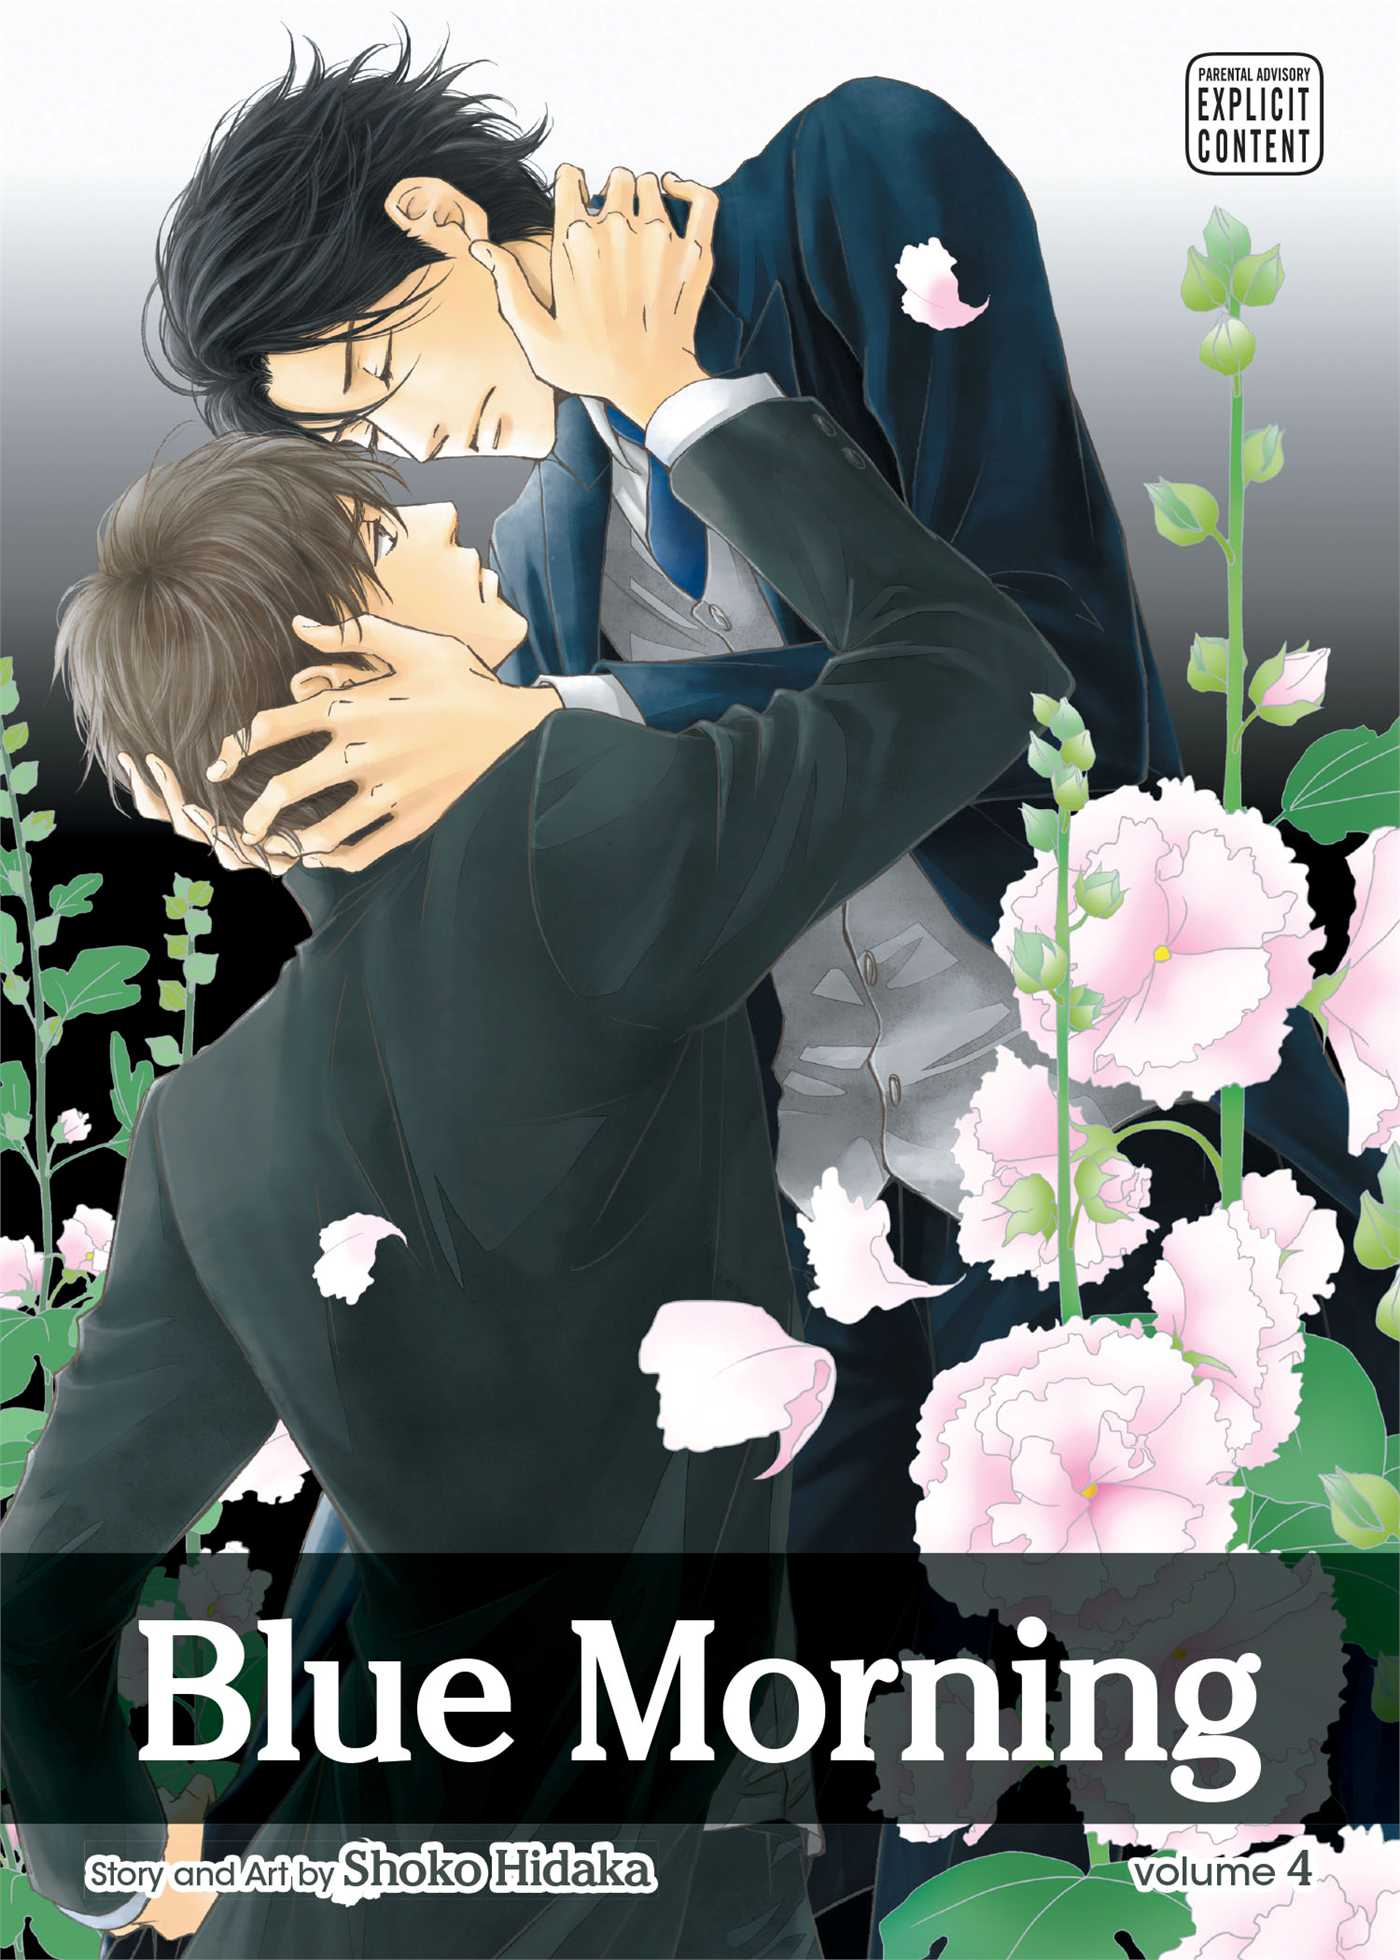 Blue-morning-vol-4-9781421555553_hr